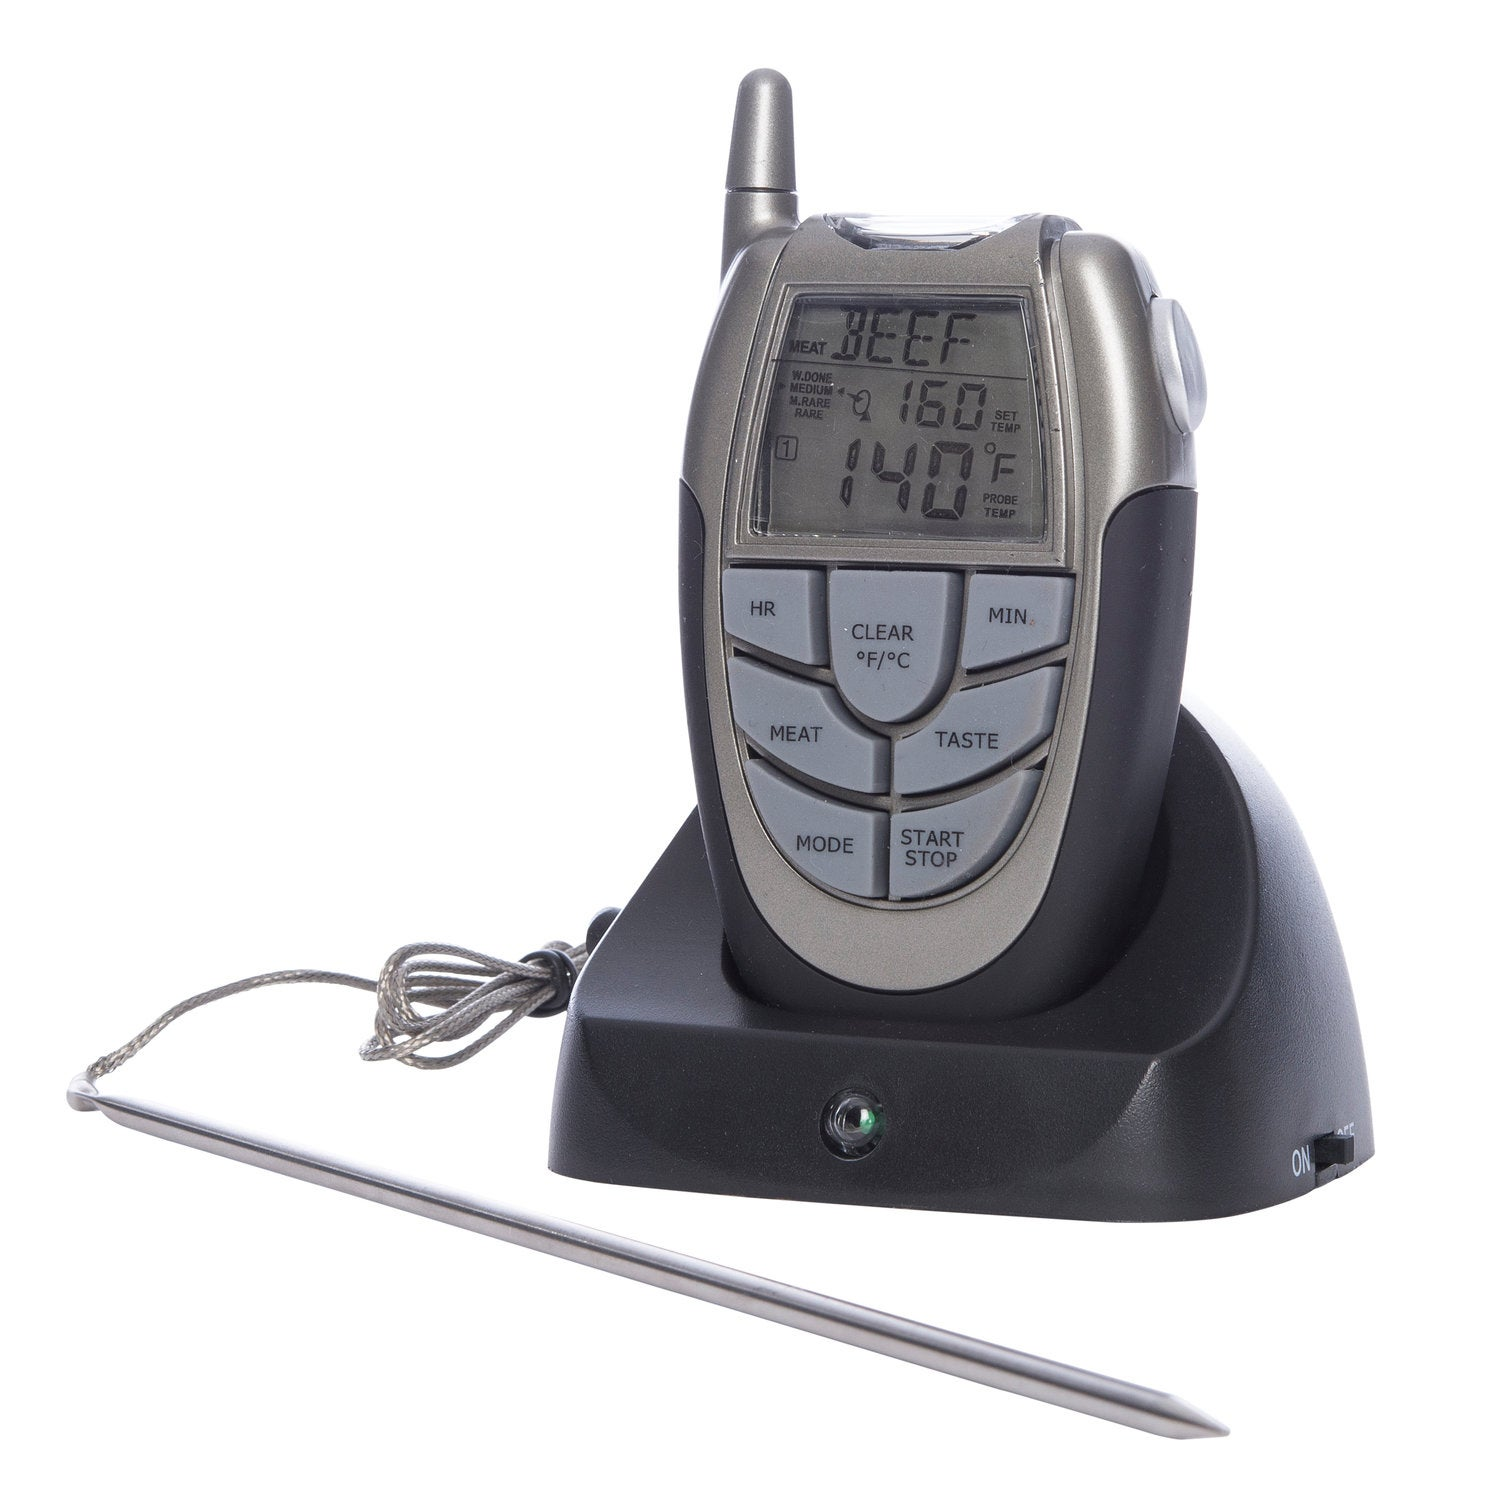 Intratuin Vleesthermometer met timer